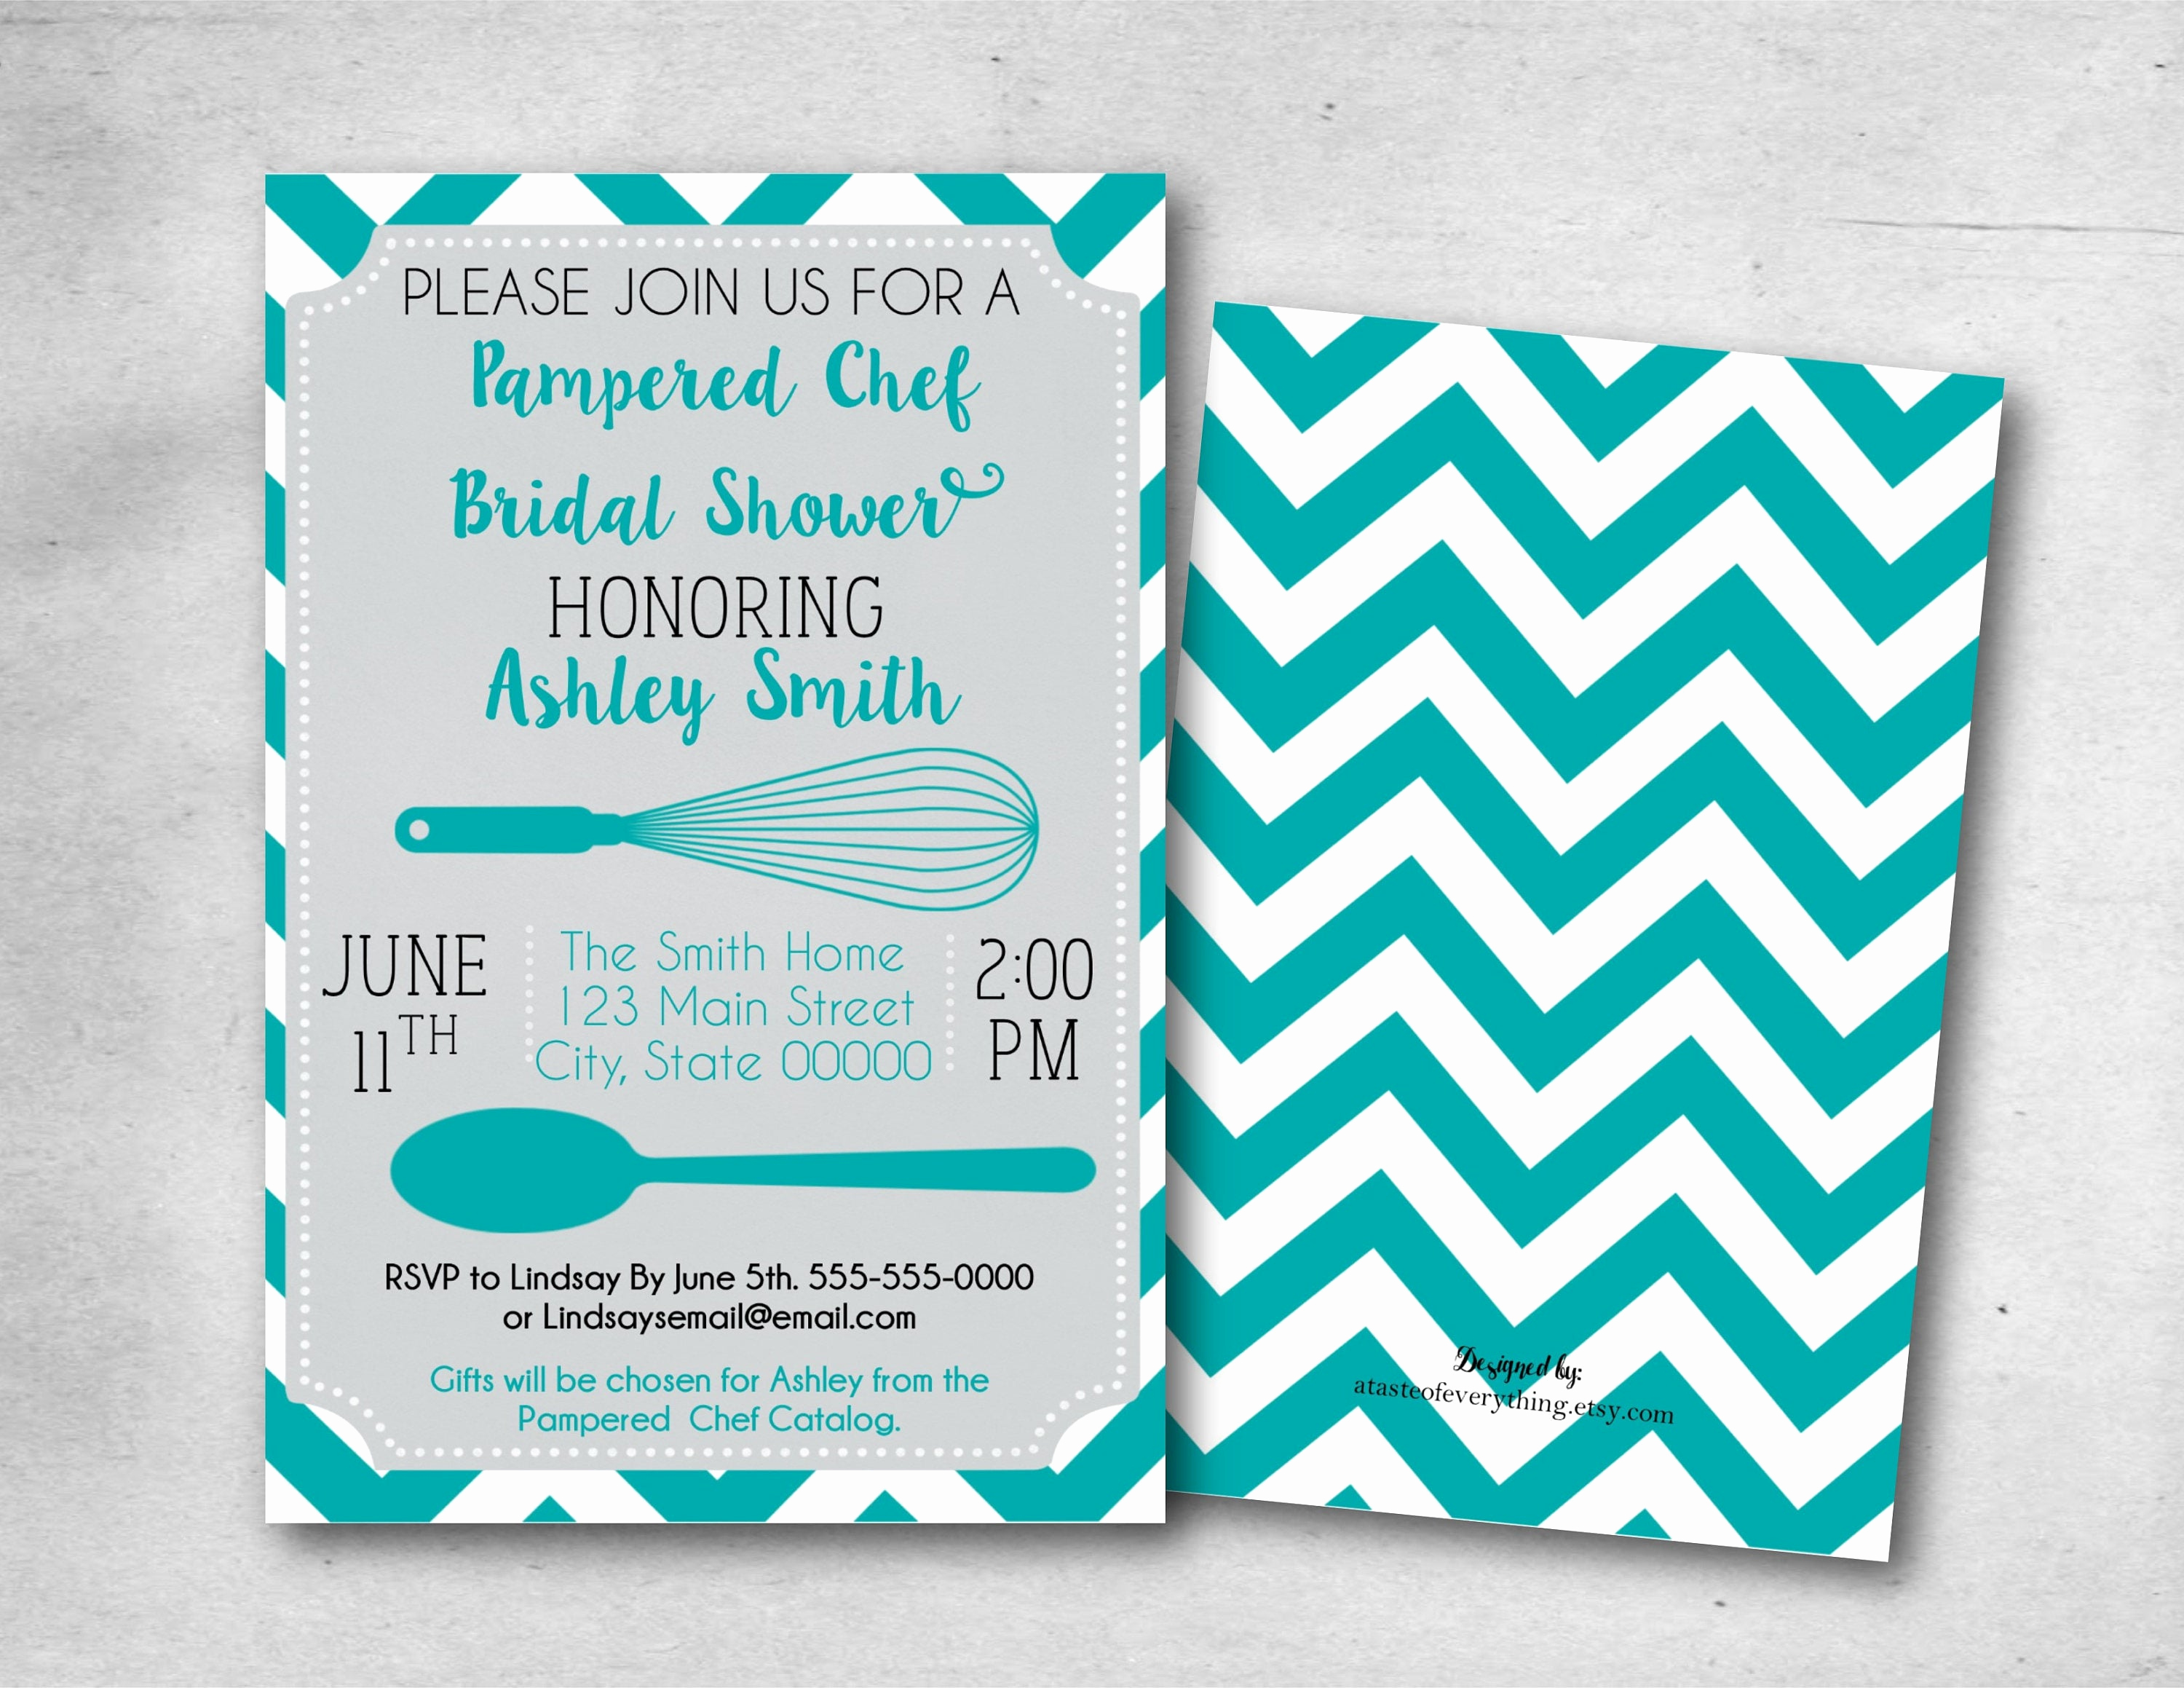 Pampered Chef Bridal Shower Invitation Awesome Bridal Shower Invitation Pampered Chef Teal Turquoise